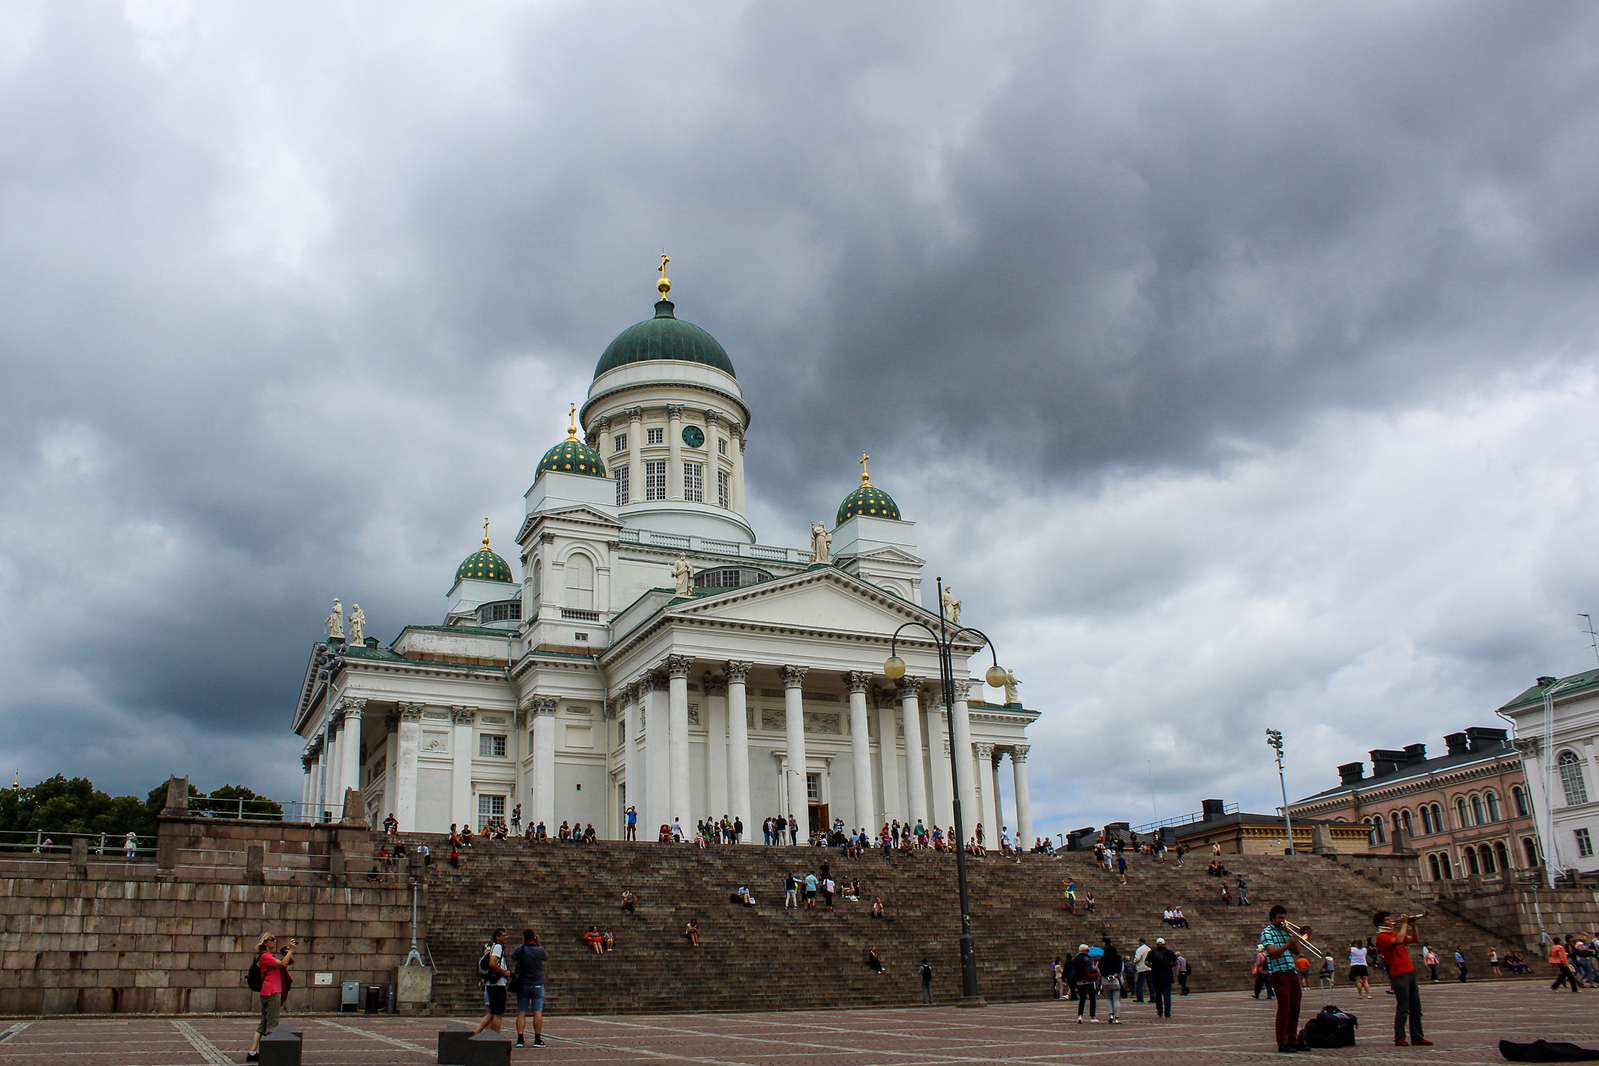 helsinki in 24 hours: spend some time people watching at helsinki cathedral